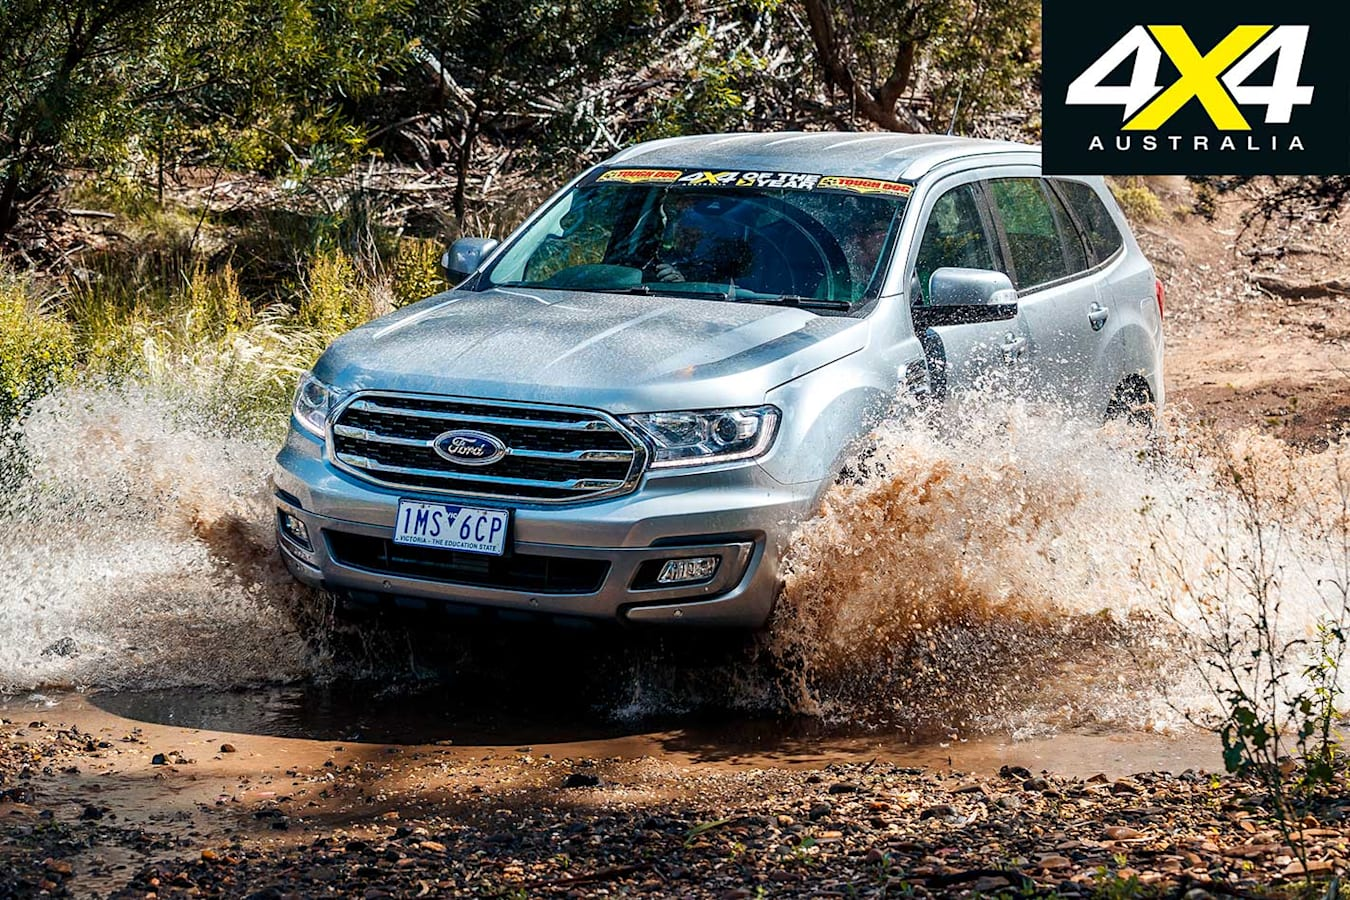 2019 4 X 4 Of The Year Ford Everest Trend Water Crossing Jpg